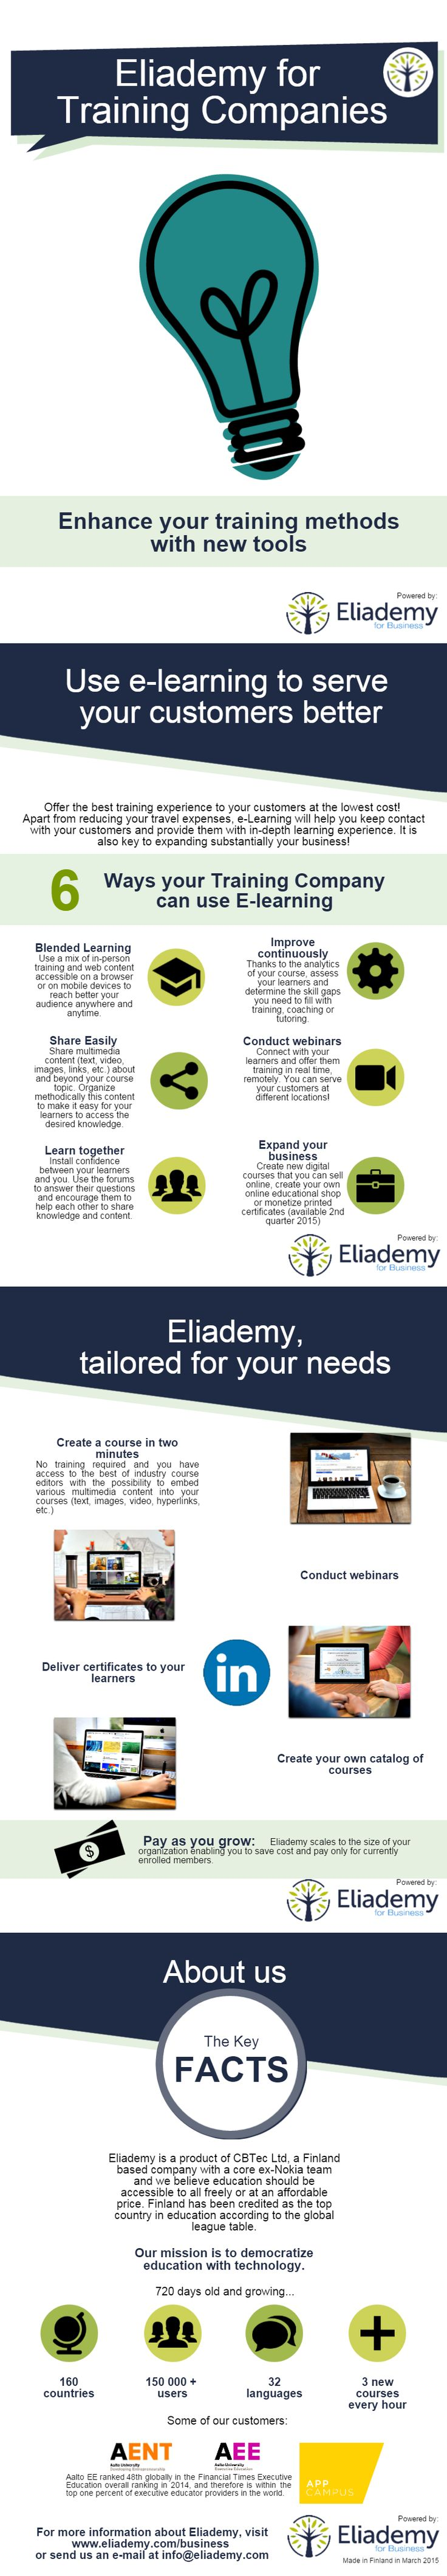 Eliademy for Training Companies #training #elearning #consultants #coaches #certificates #brochure